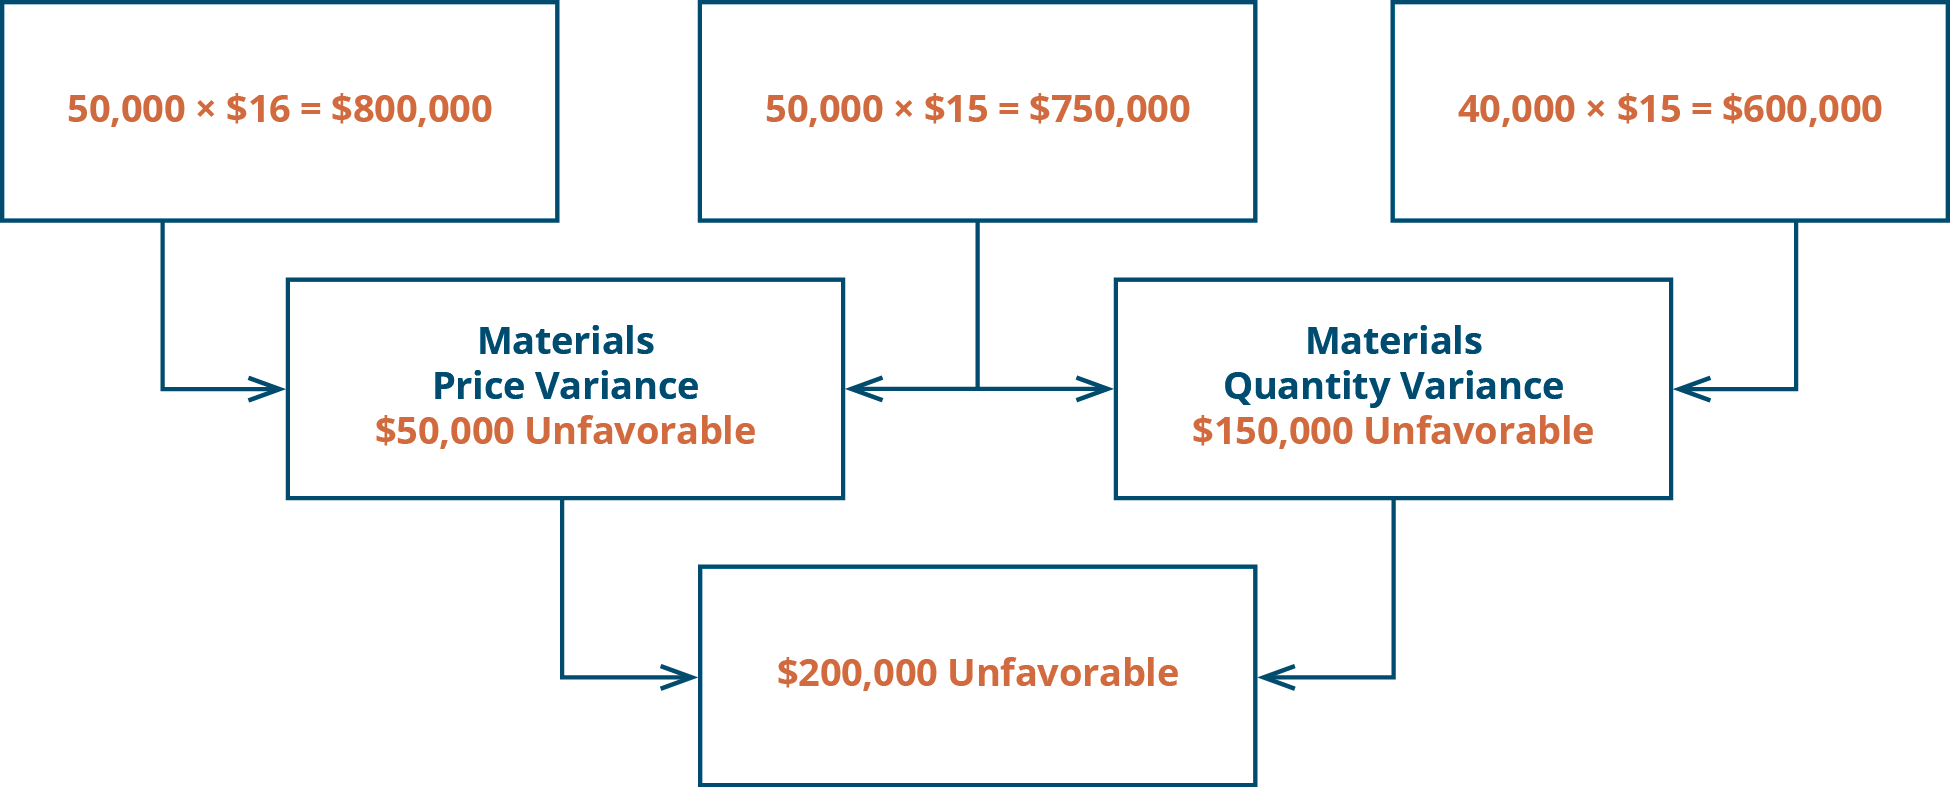 Materials Price Variance 50,000 times $16 equals $800,000. 50,000 times $15 equals $750,000. $50,000 unfavorable, Plus: Materials Quantity variance 50,000 times $15 equals 750,000. 40,000 times $15 equals $600,00. $150,000 unfavorable. Equals $200,000 unfavorable.